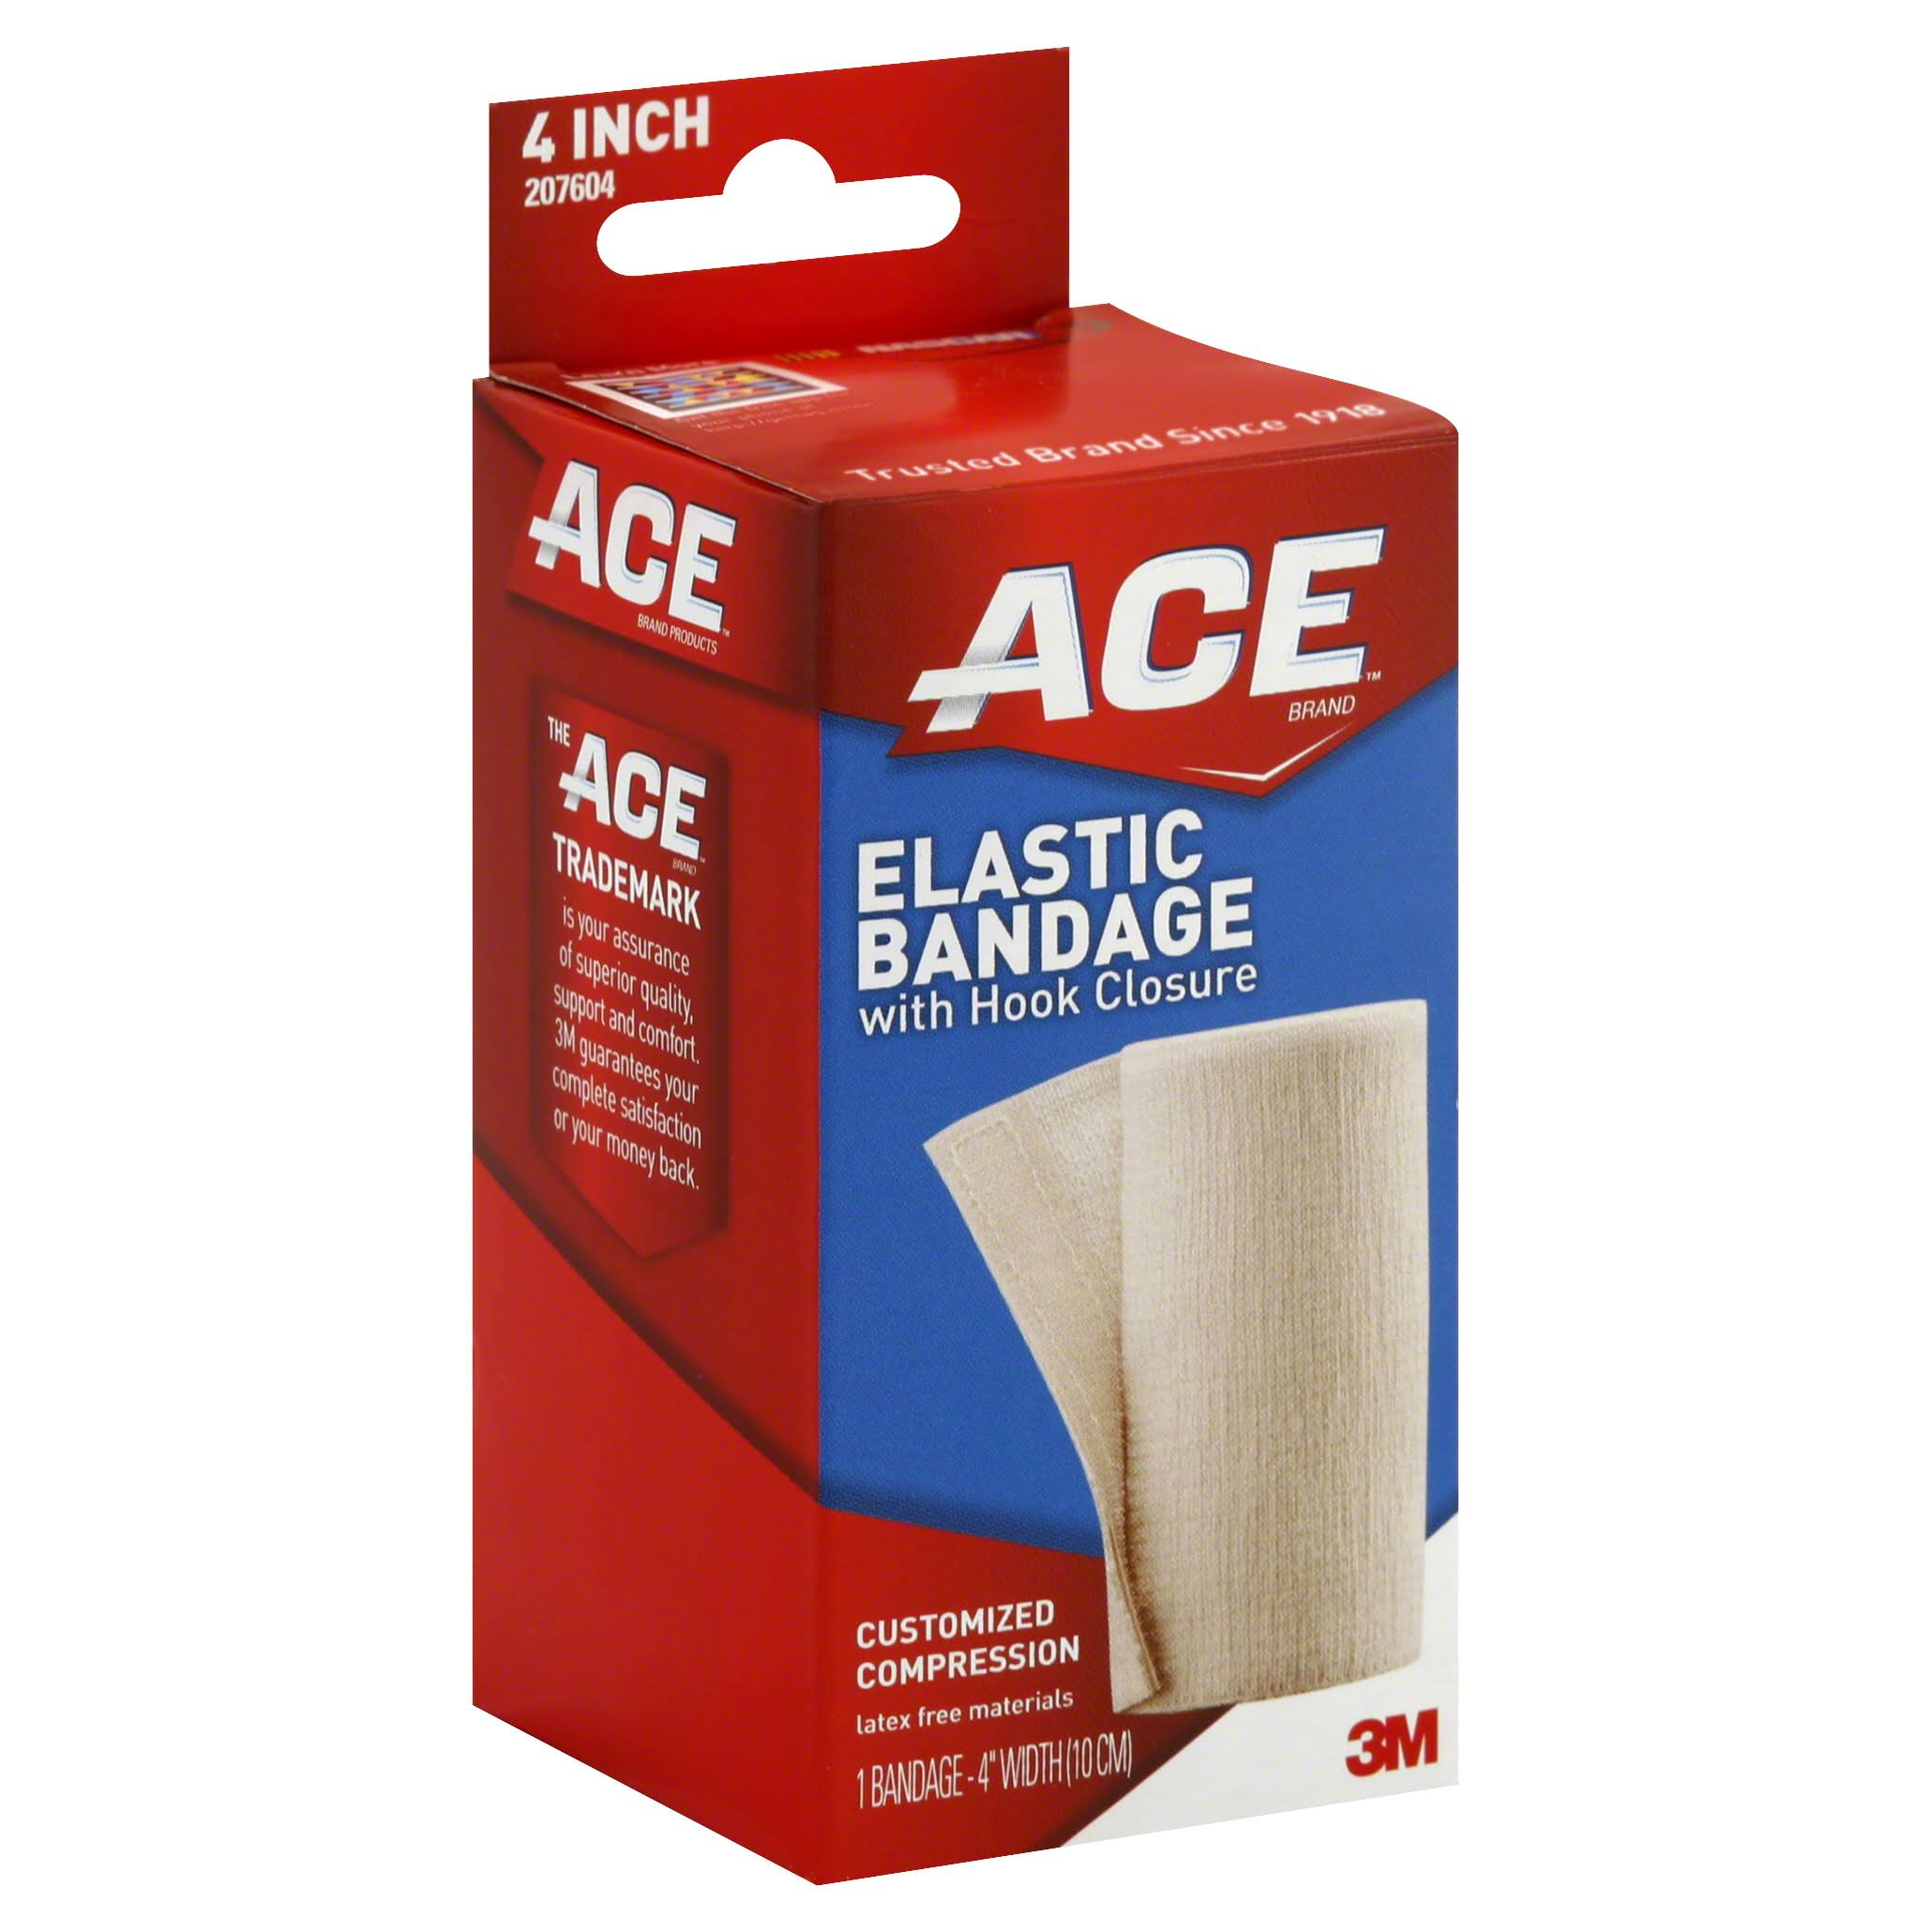 Ace Elastic Bandage with Hook Closure - 4''